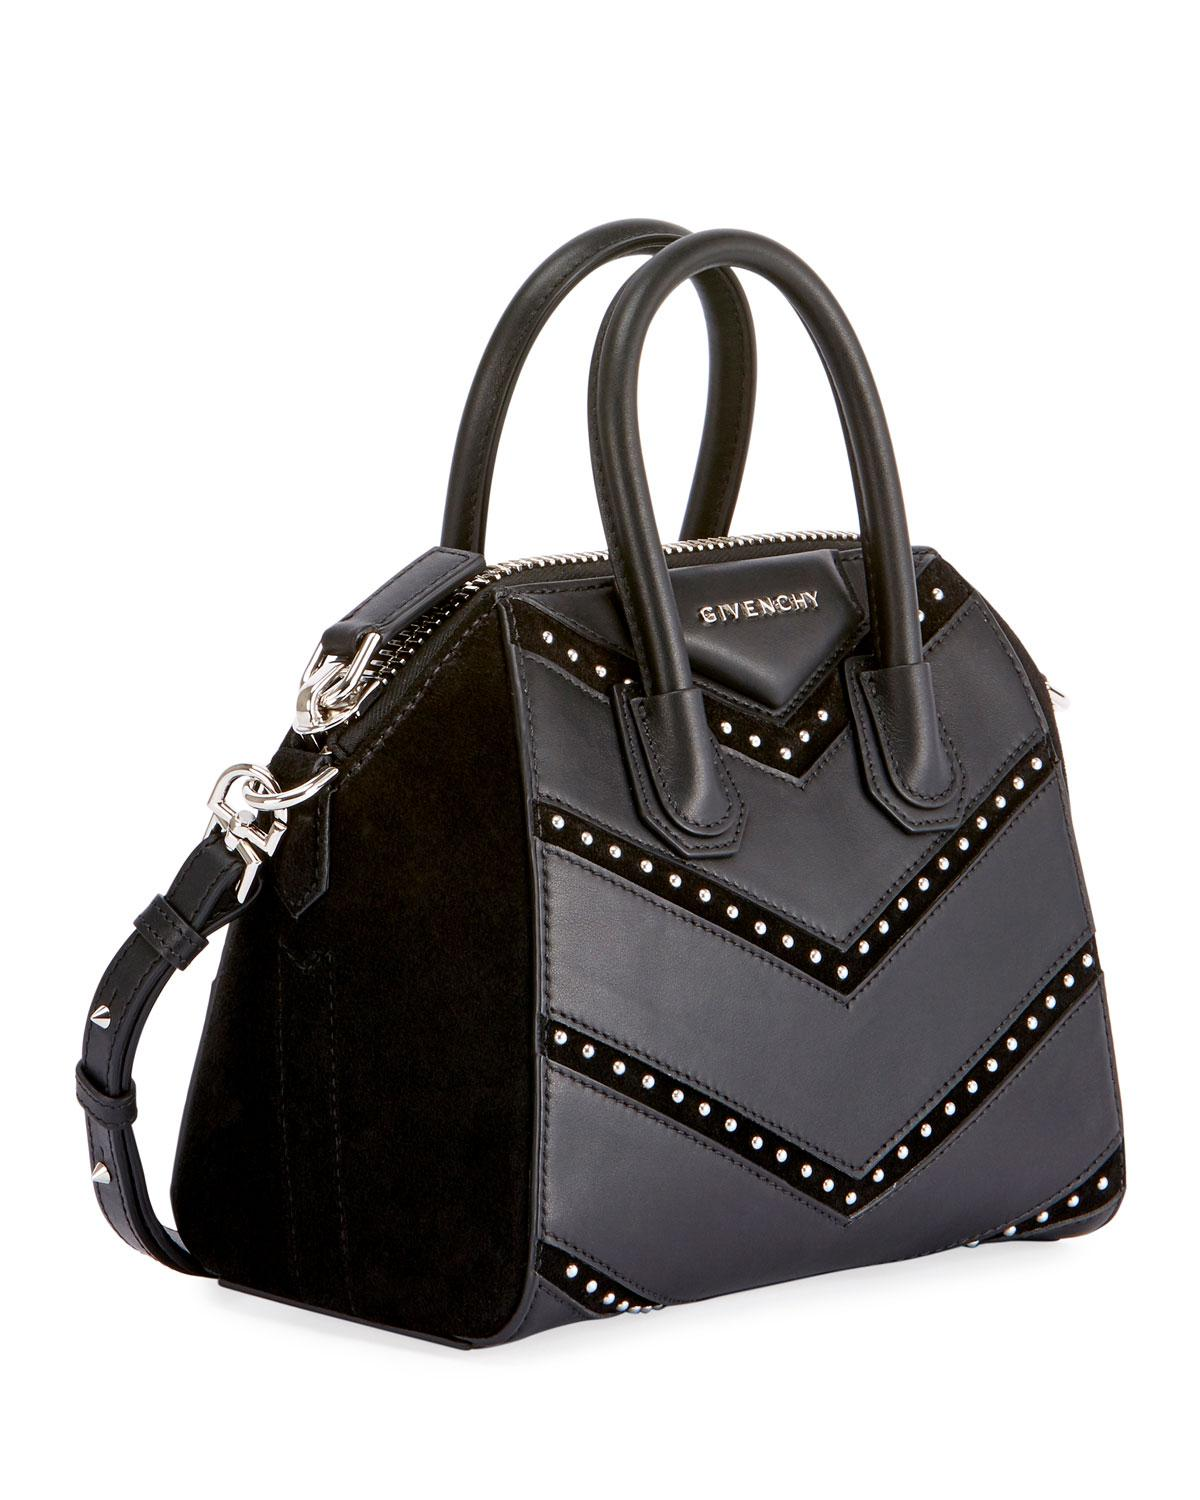 840743c795 Lyst - Givenchy Antigona Mini Studded Chevron Satchel Bag in Black